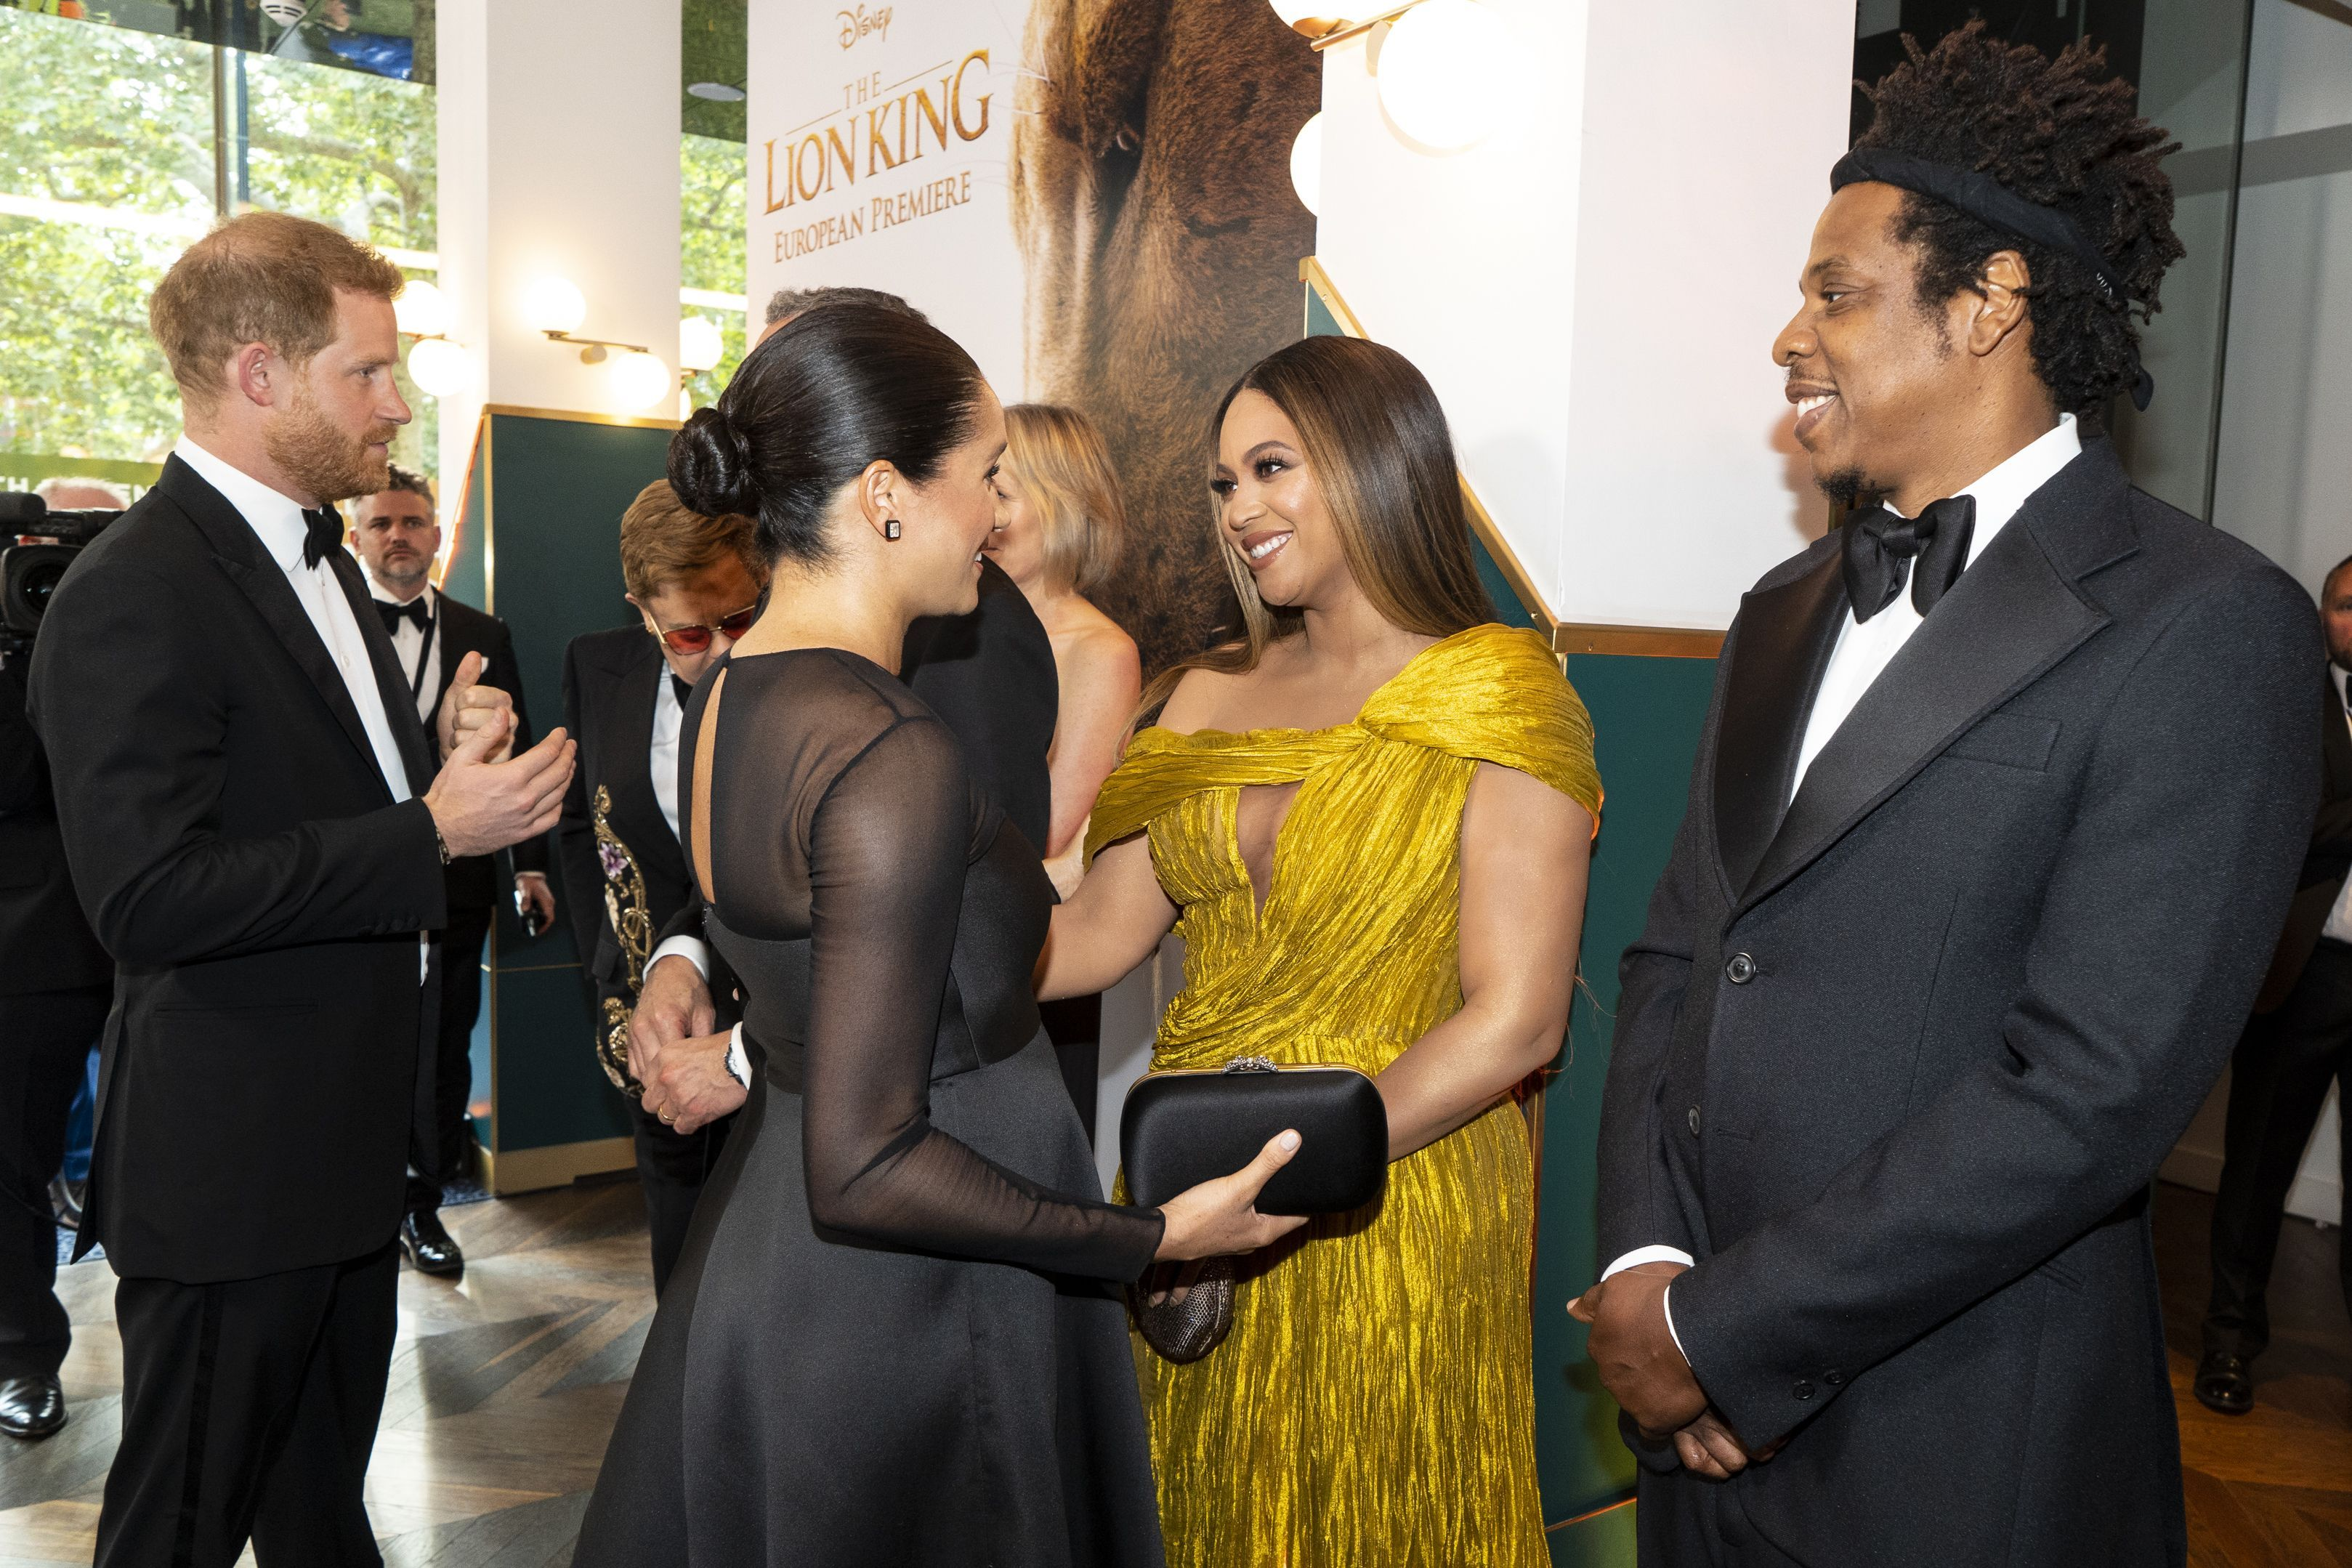 What Meghan Markle and Beyoncé Talked About at Lion King Premiere